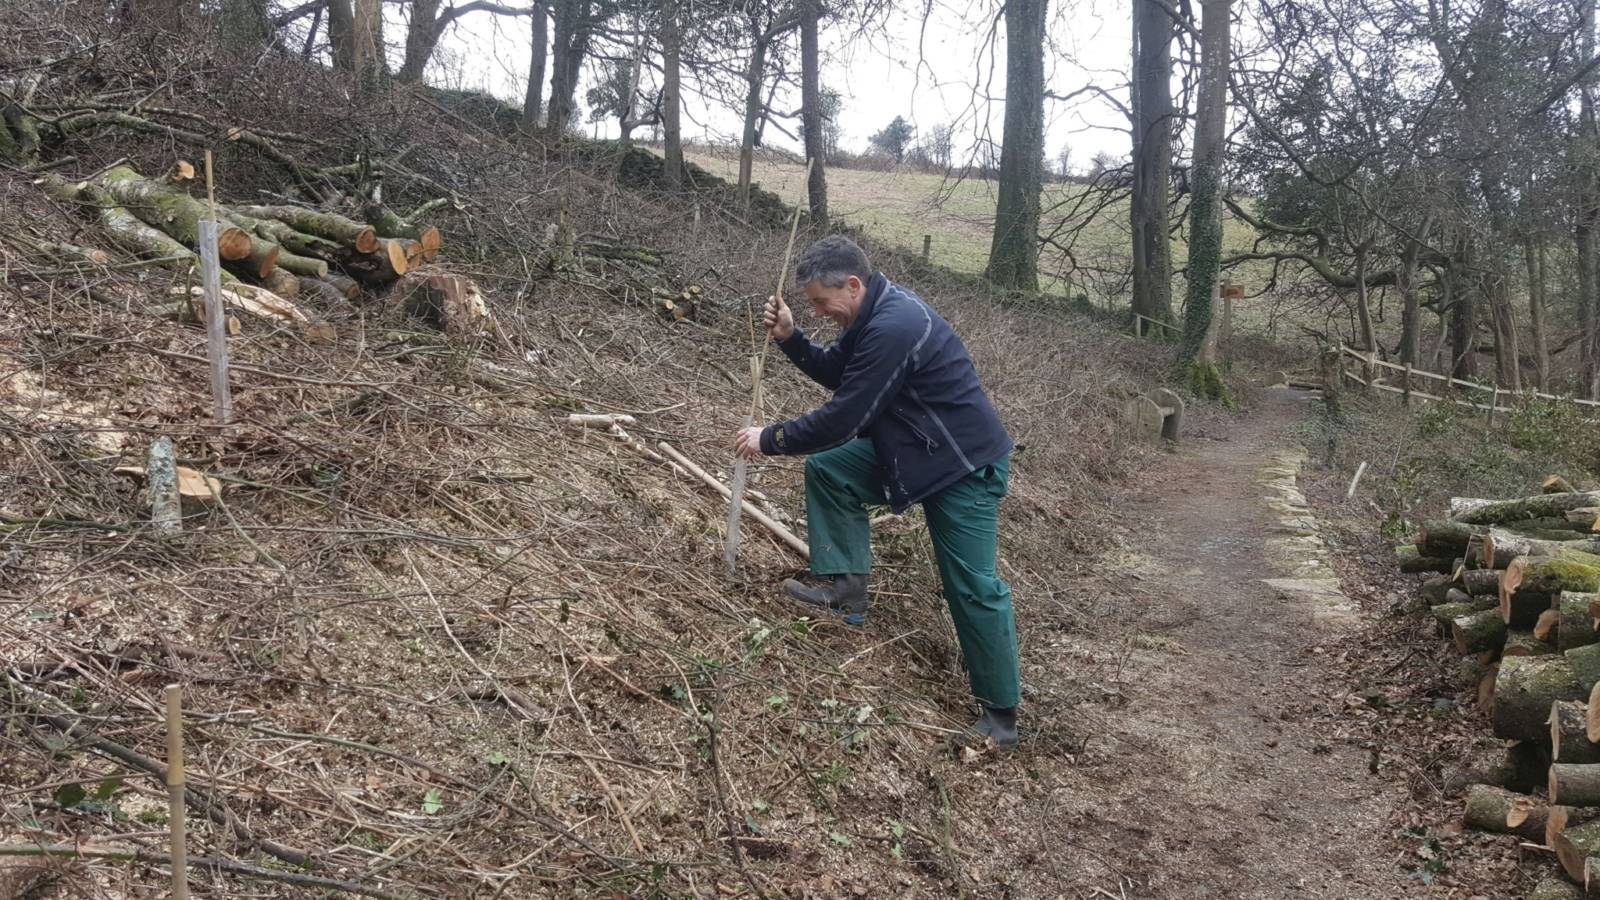 Planting trees in the woodland